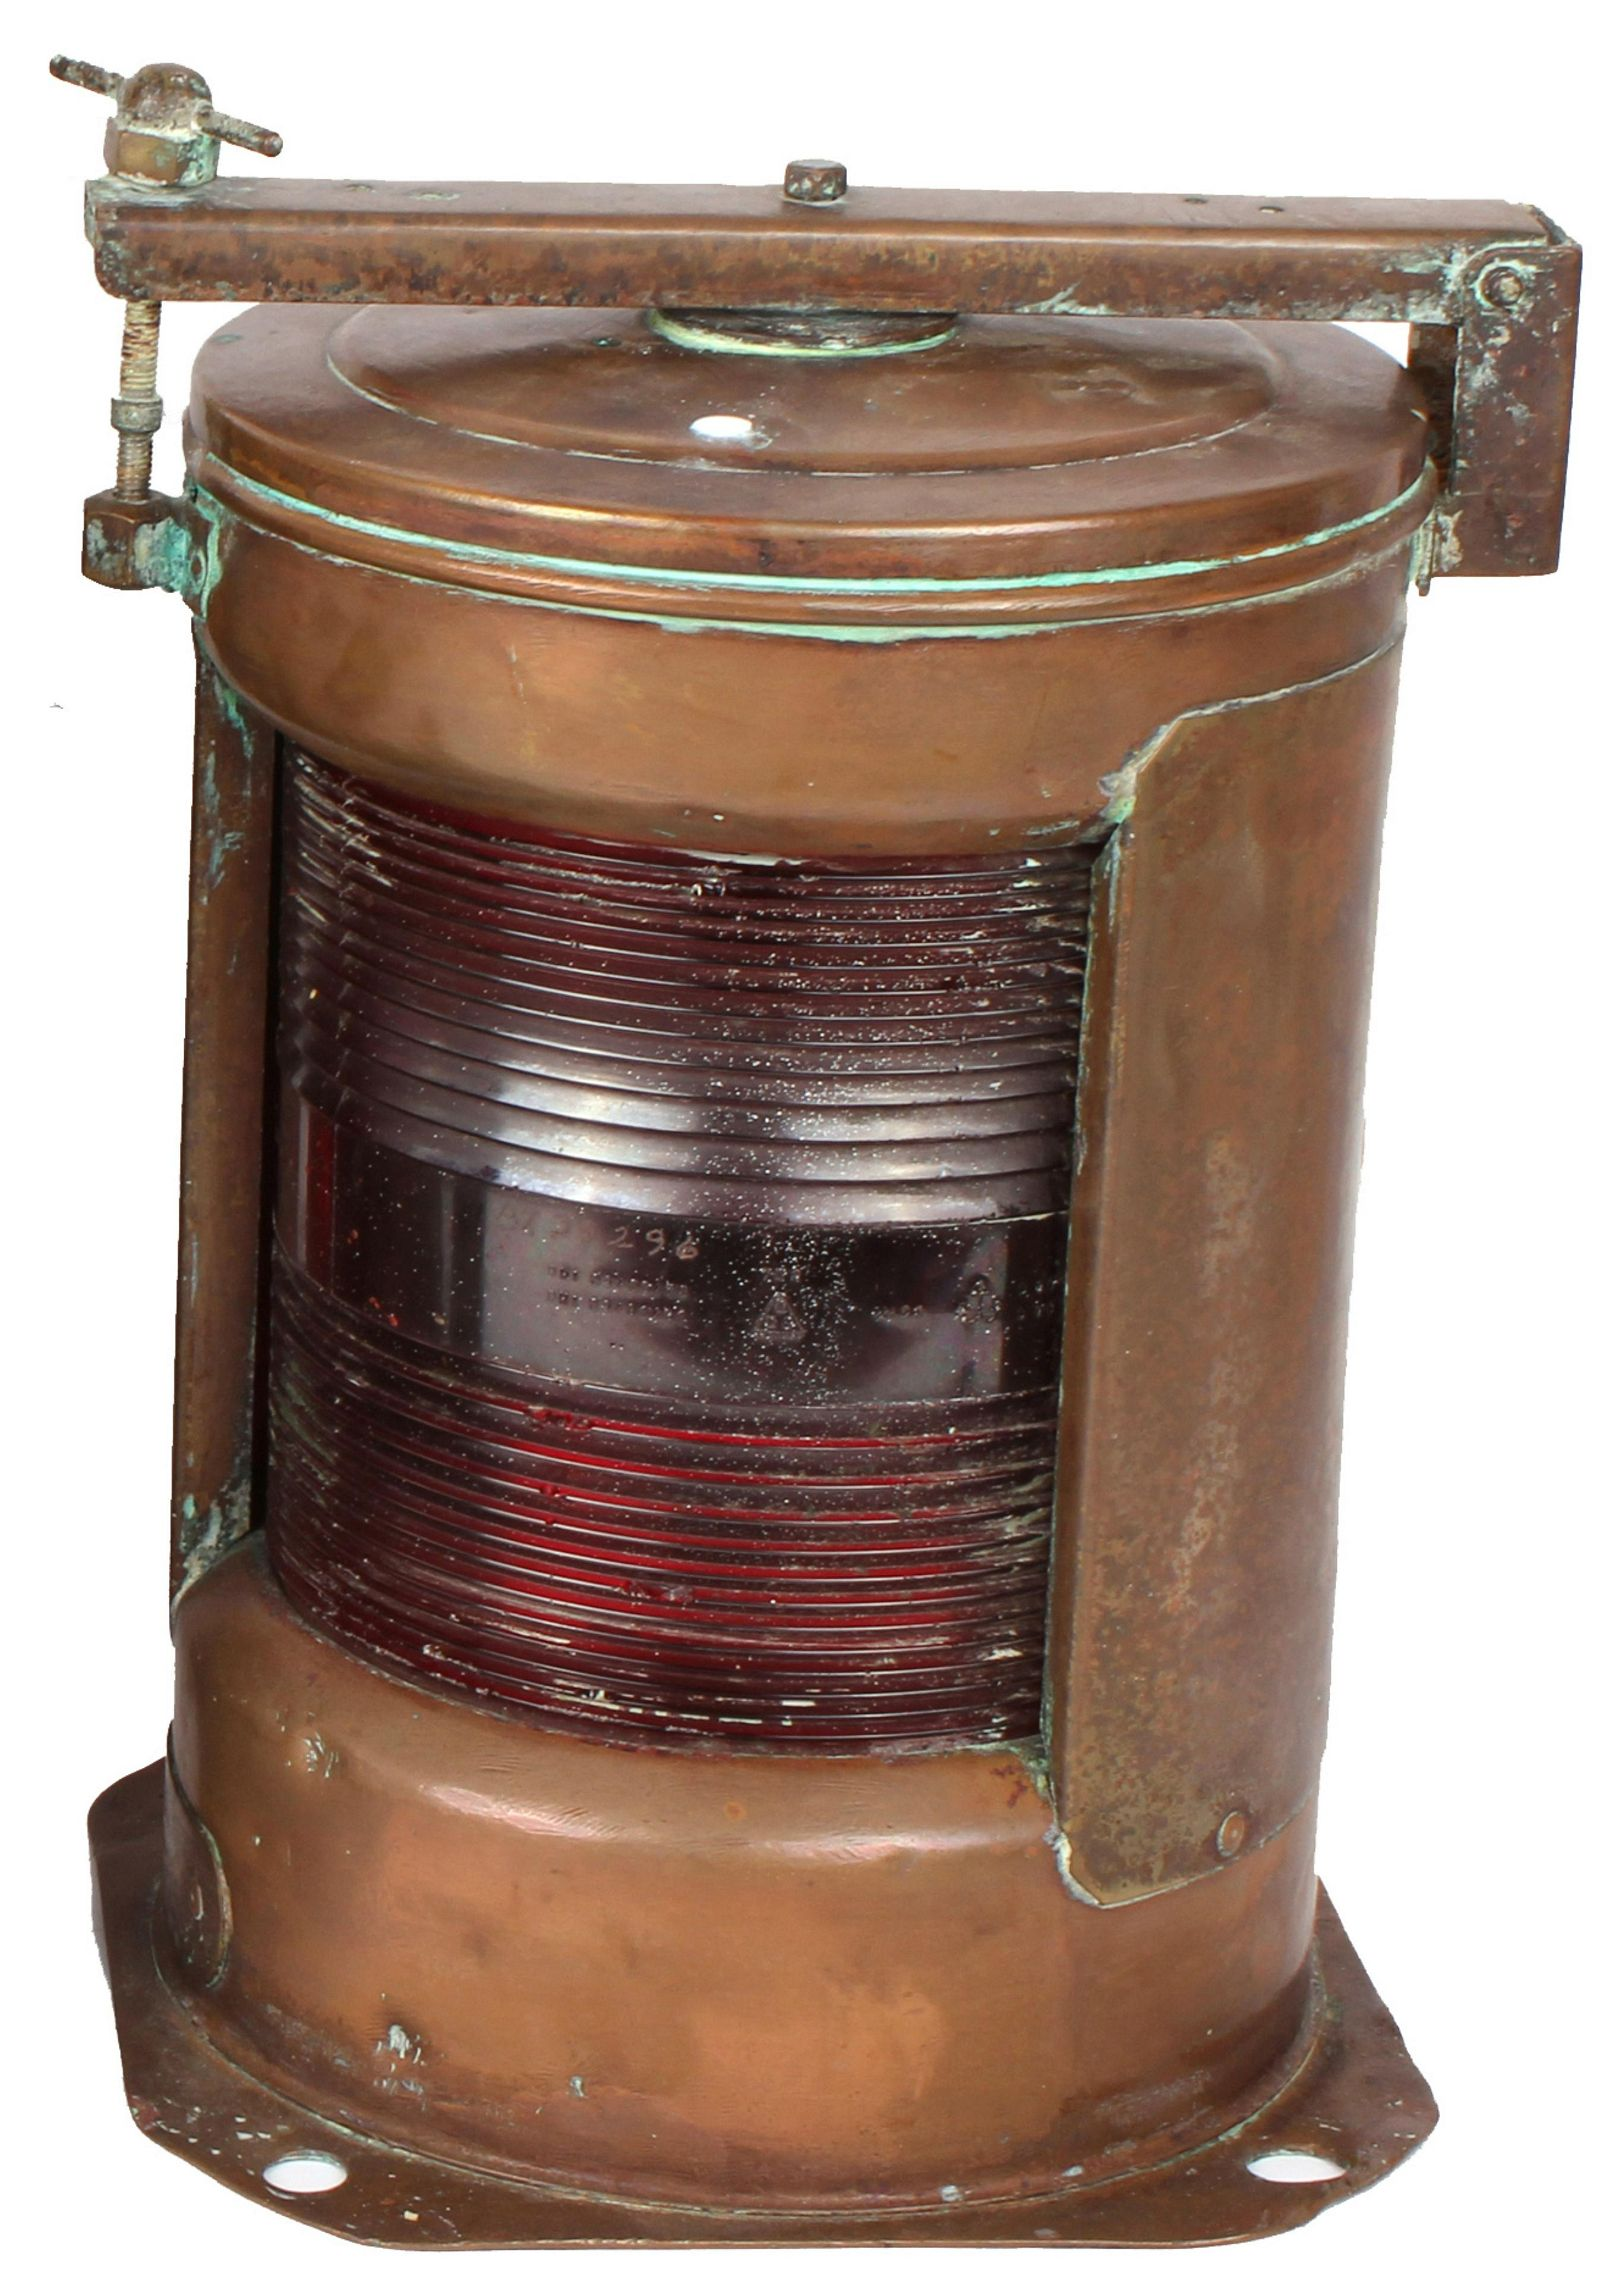 EARLY 20TH C. SHIP'S BRASS PORT RED SIGNAL LIGHT